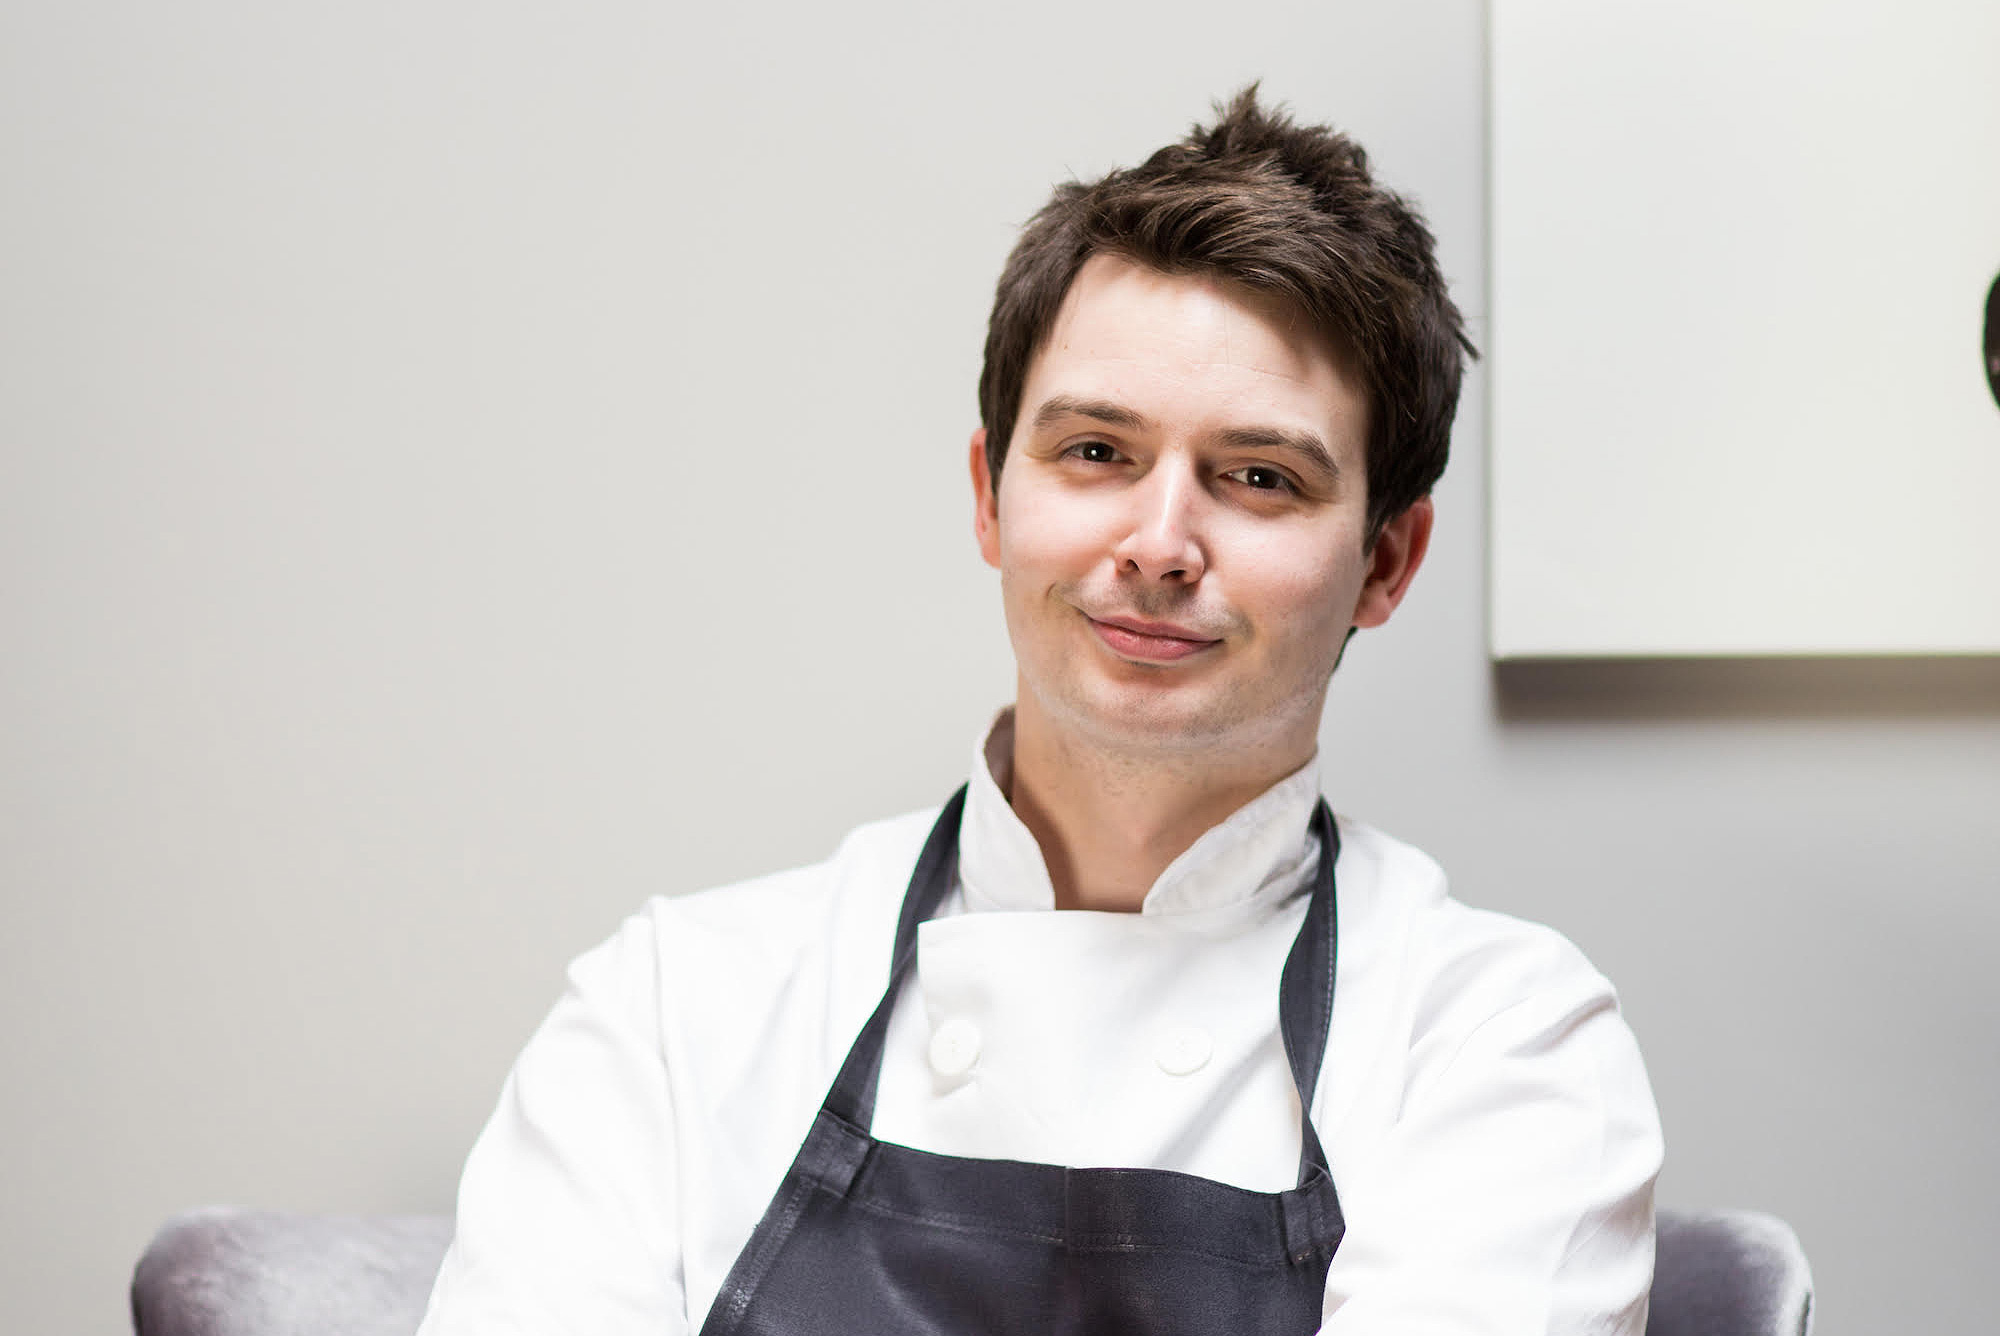 Derek Johnstone Becomes The New Chef At Scotland's Borthwick Castle